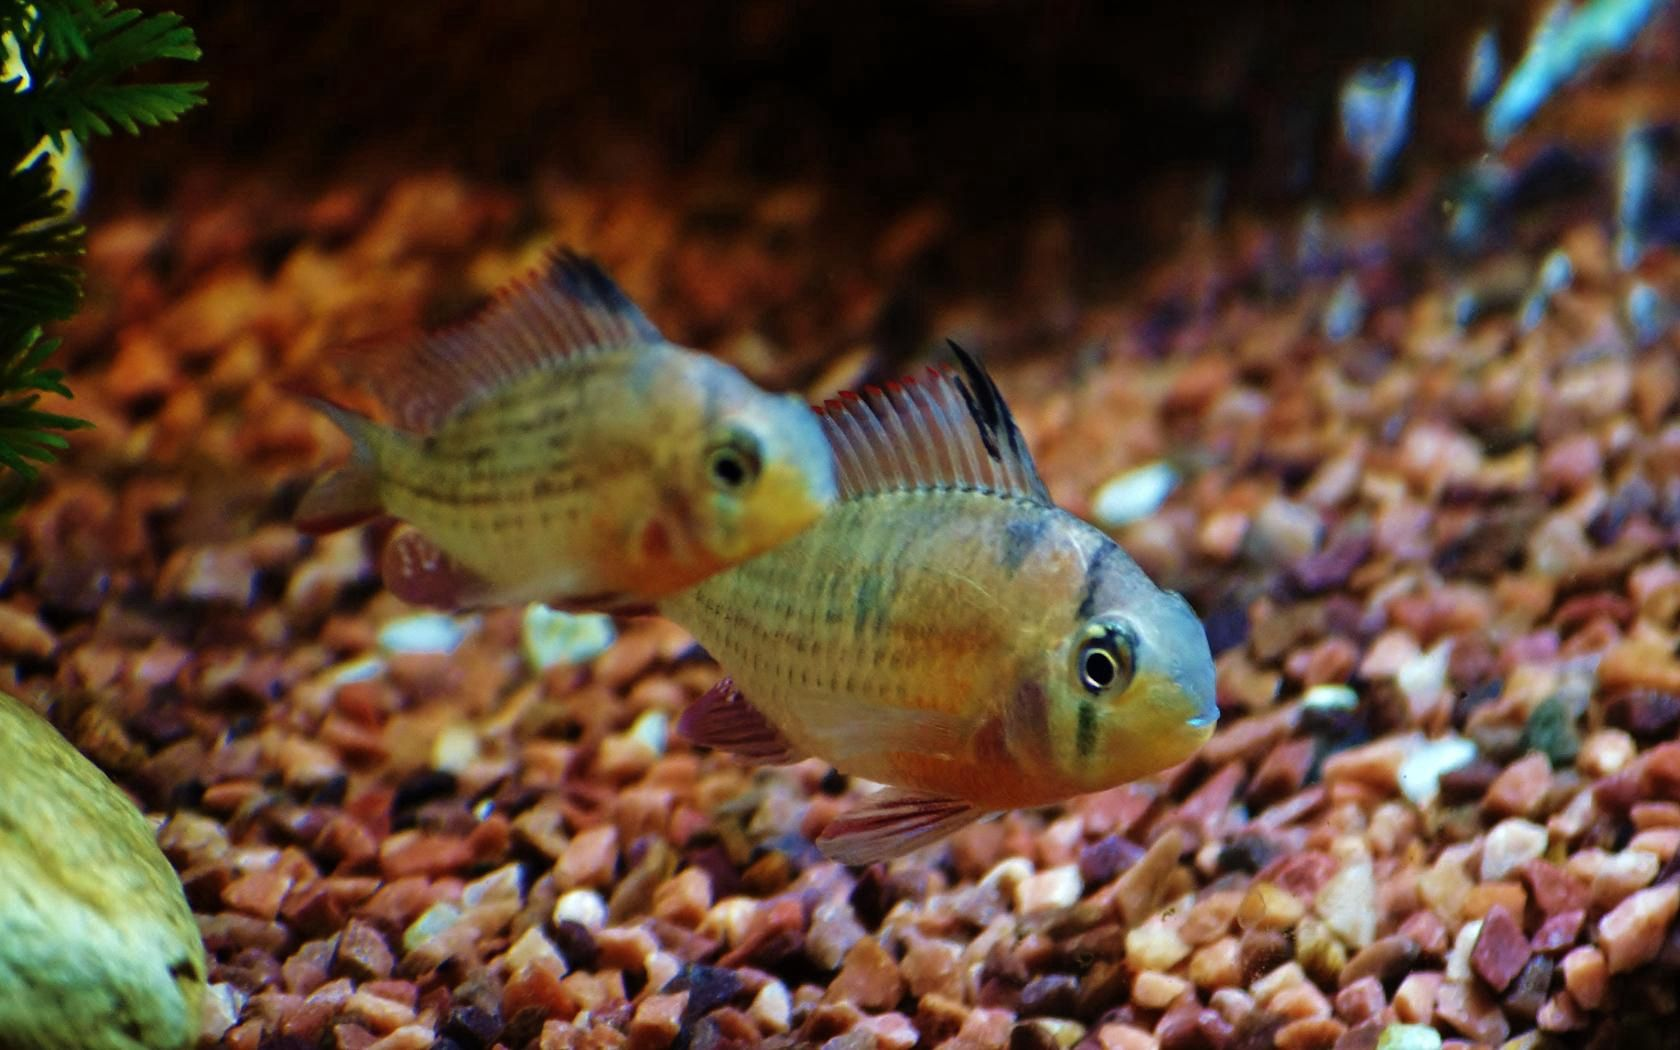 151707 download wallpaper Animals, Water, Fishes, Macro, Minimalism, Aquarium, Fish screensavers and pictures for free